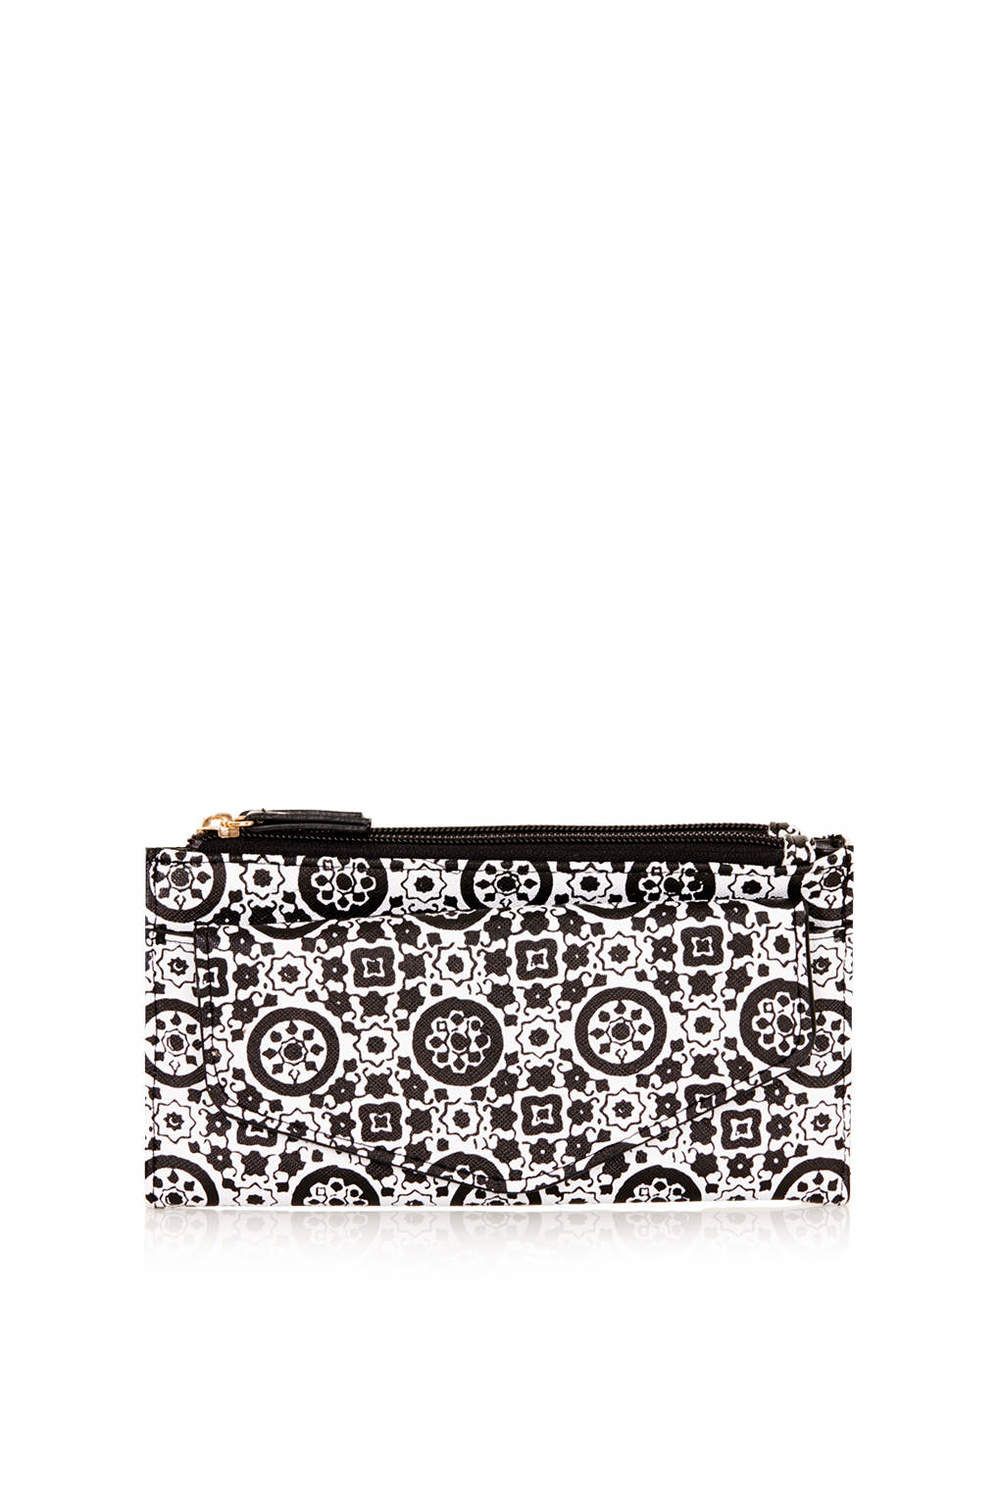 Topshop Monochrome Tile Print Purse. Topshop USA. $32.